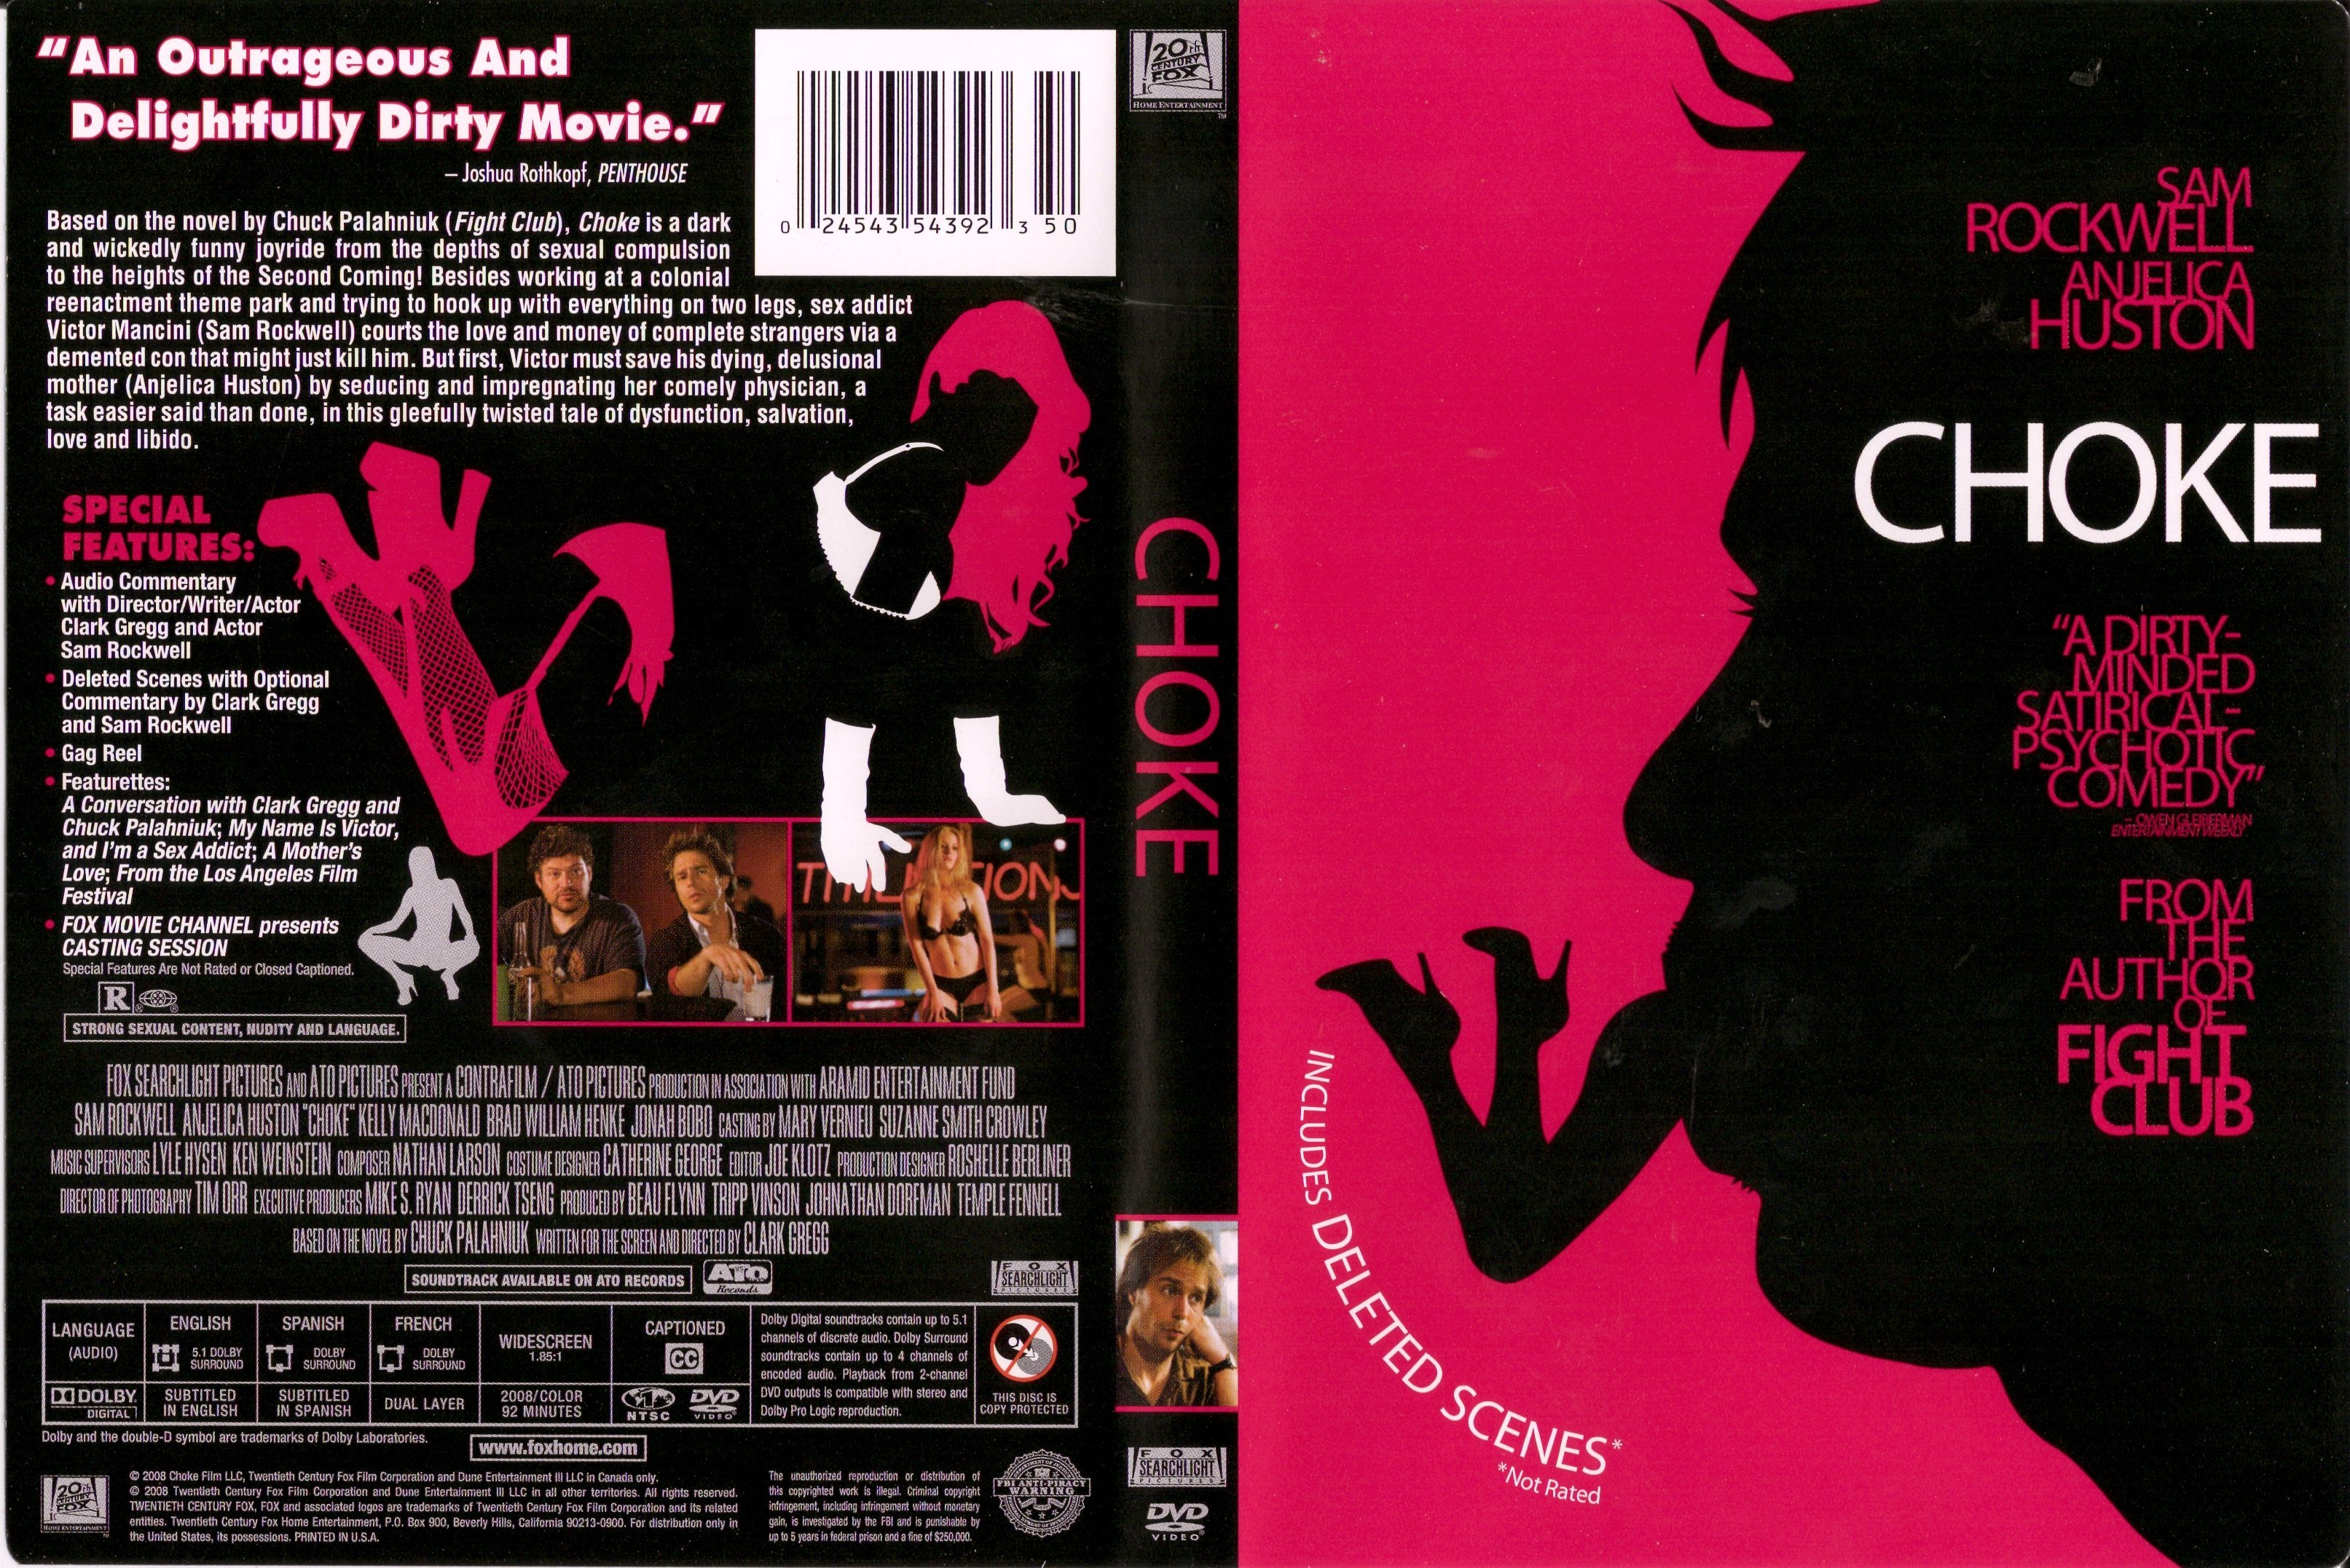 character analysis of victor mancini in choke a novel by chuck palahniuk A novel by chuck palahniuk go along for the ride with victor mancini as he cruises sexual addiction recovery choke -chuck palahniuk read this and fell.